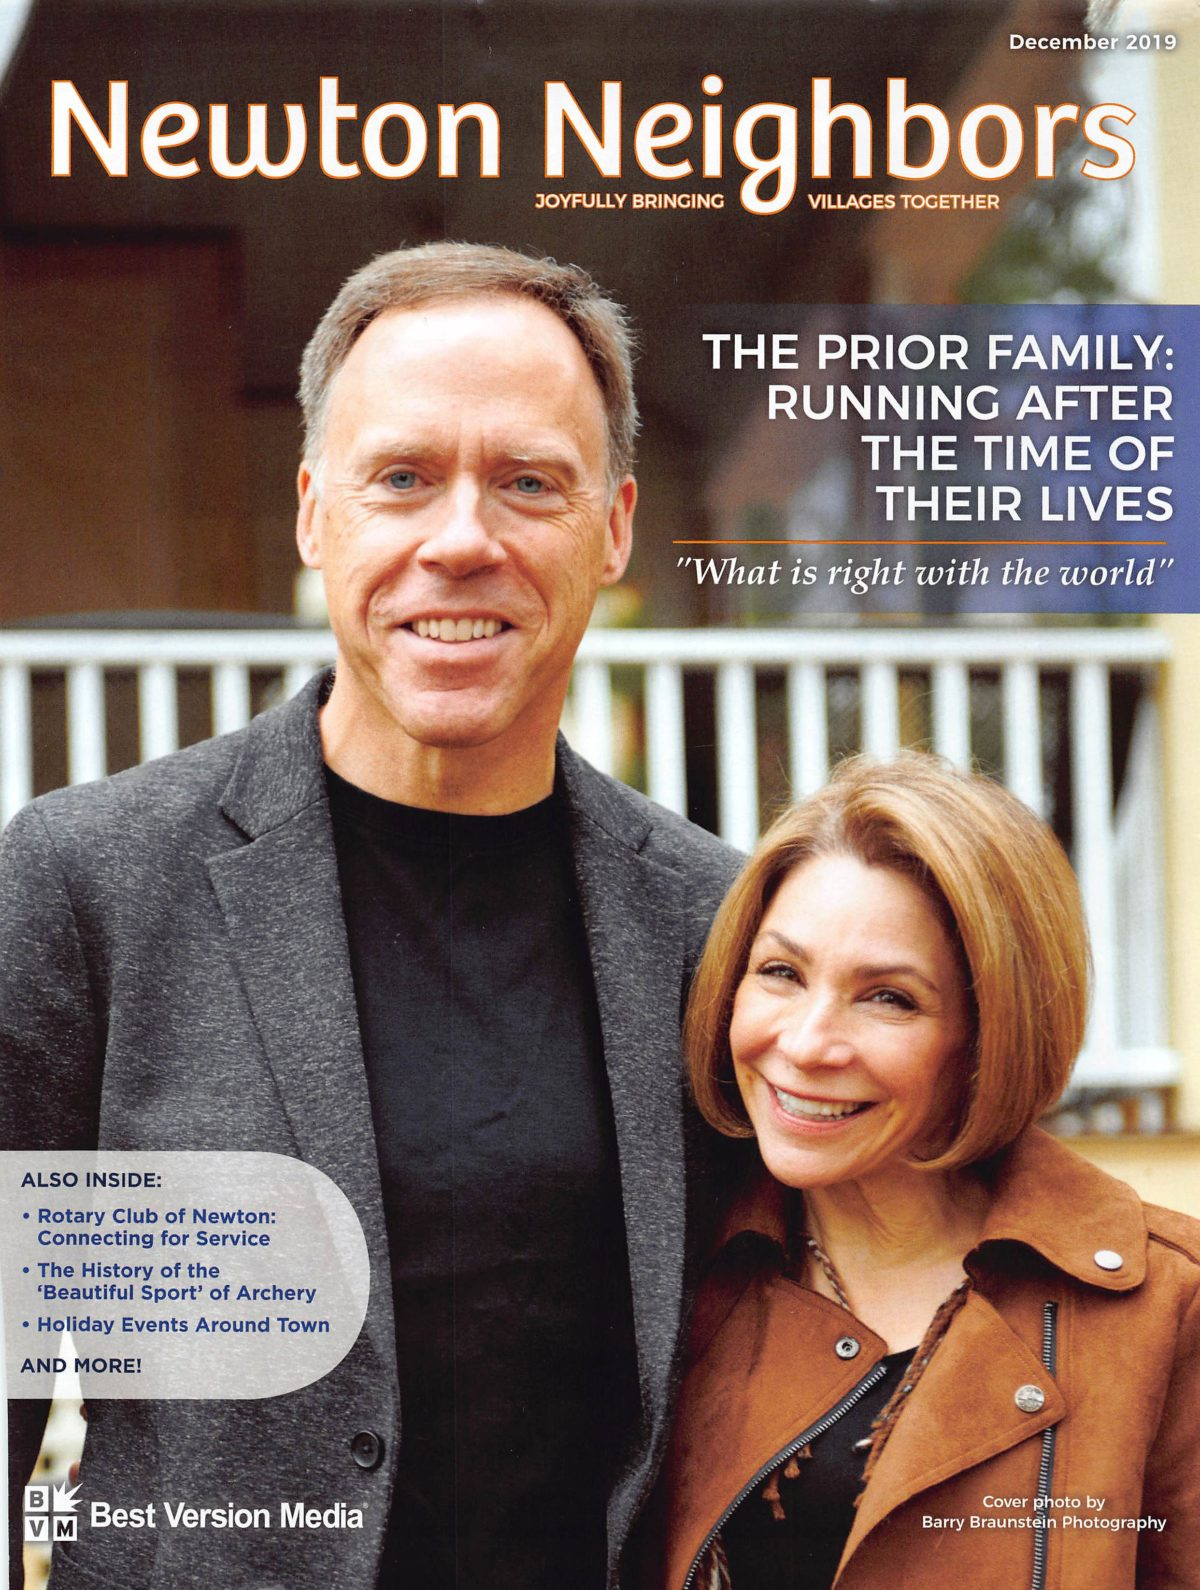 The Prior Family: Running After the Time of Their Lives